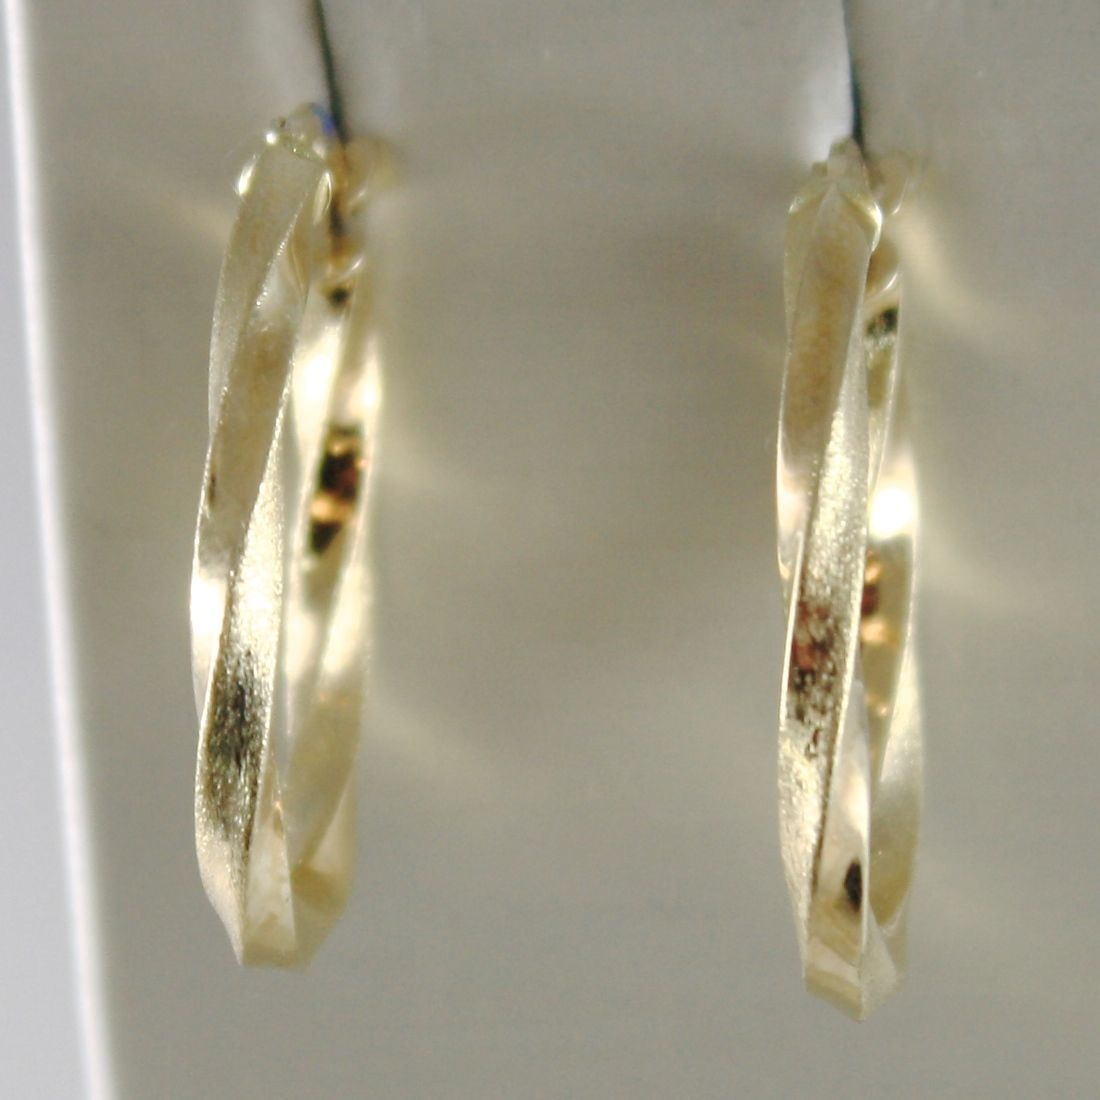 YELLOW GOLD EARRINGS 750 18K IN CIRCLE, OVALS, TWISTED, TRANSPARENCIES AND SATIN